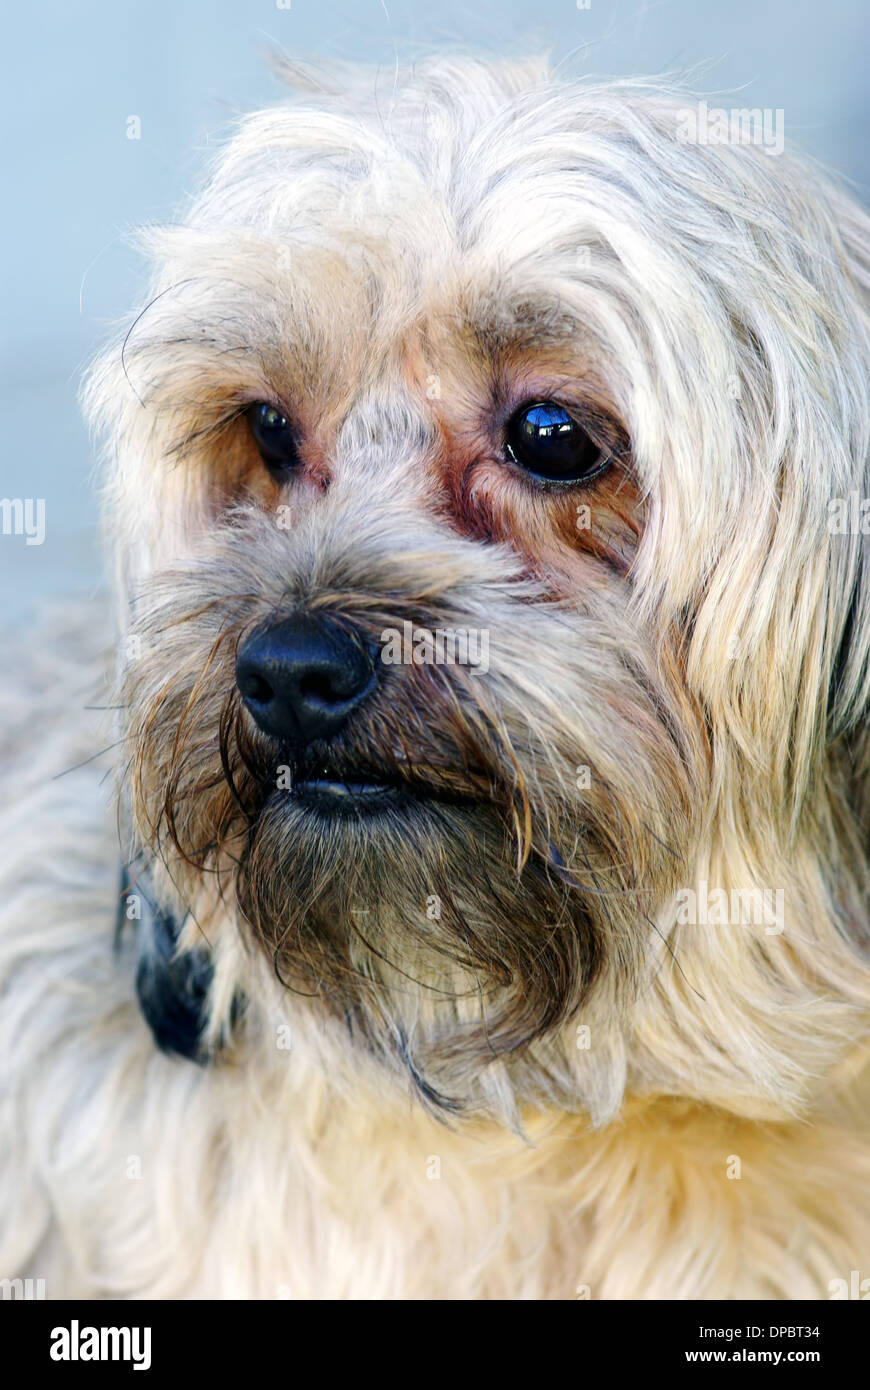 Lovely brown bichon portrait, close up image Stock Photo